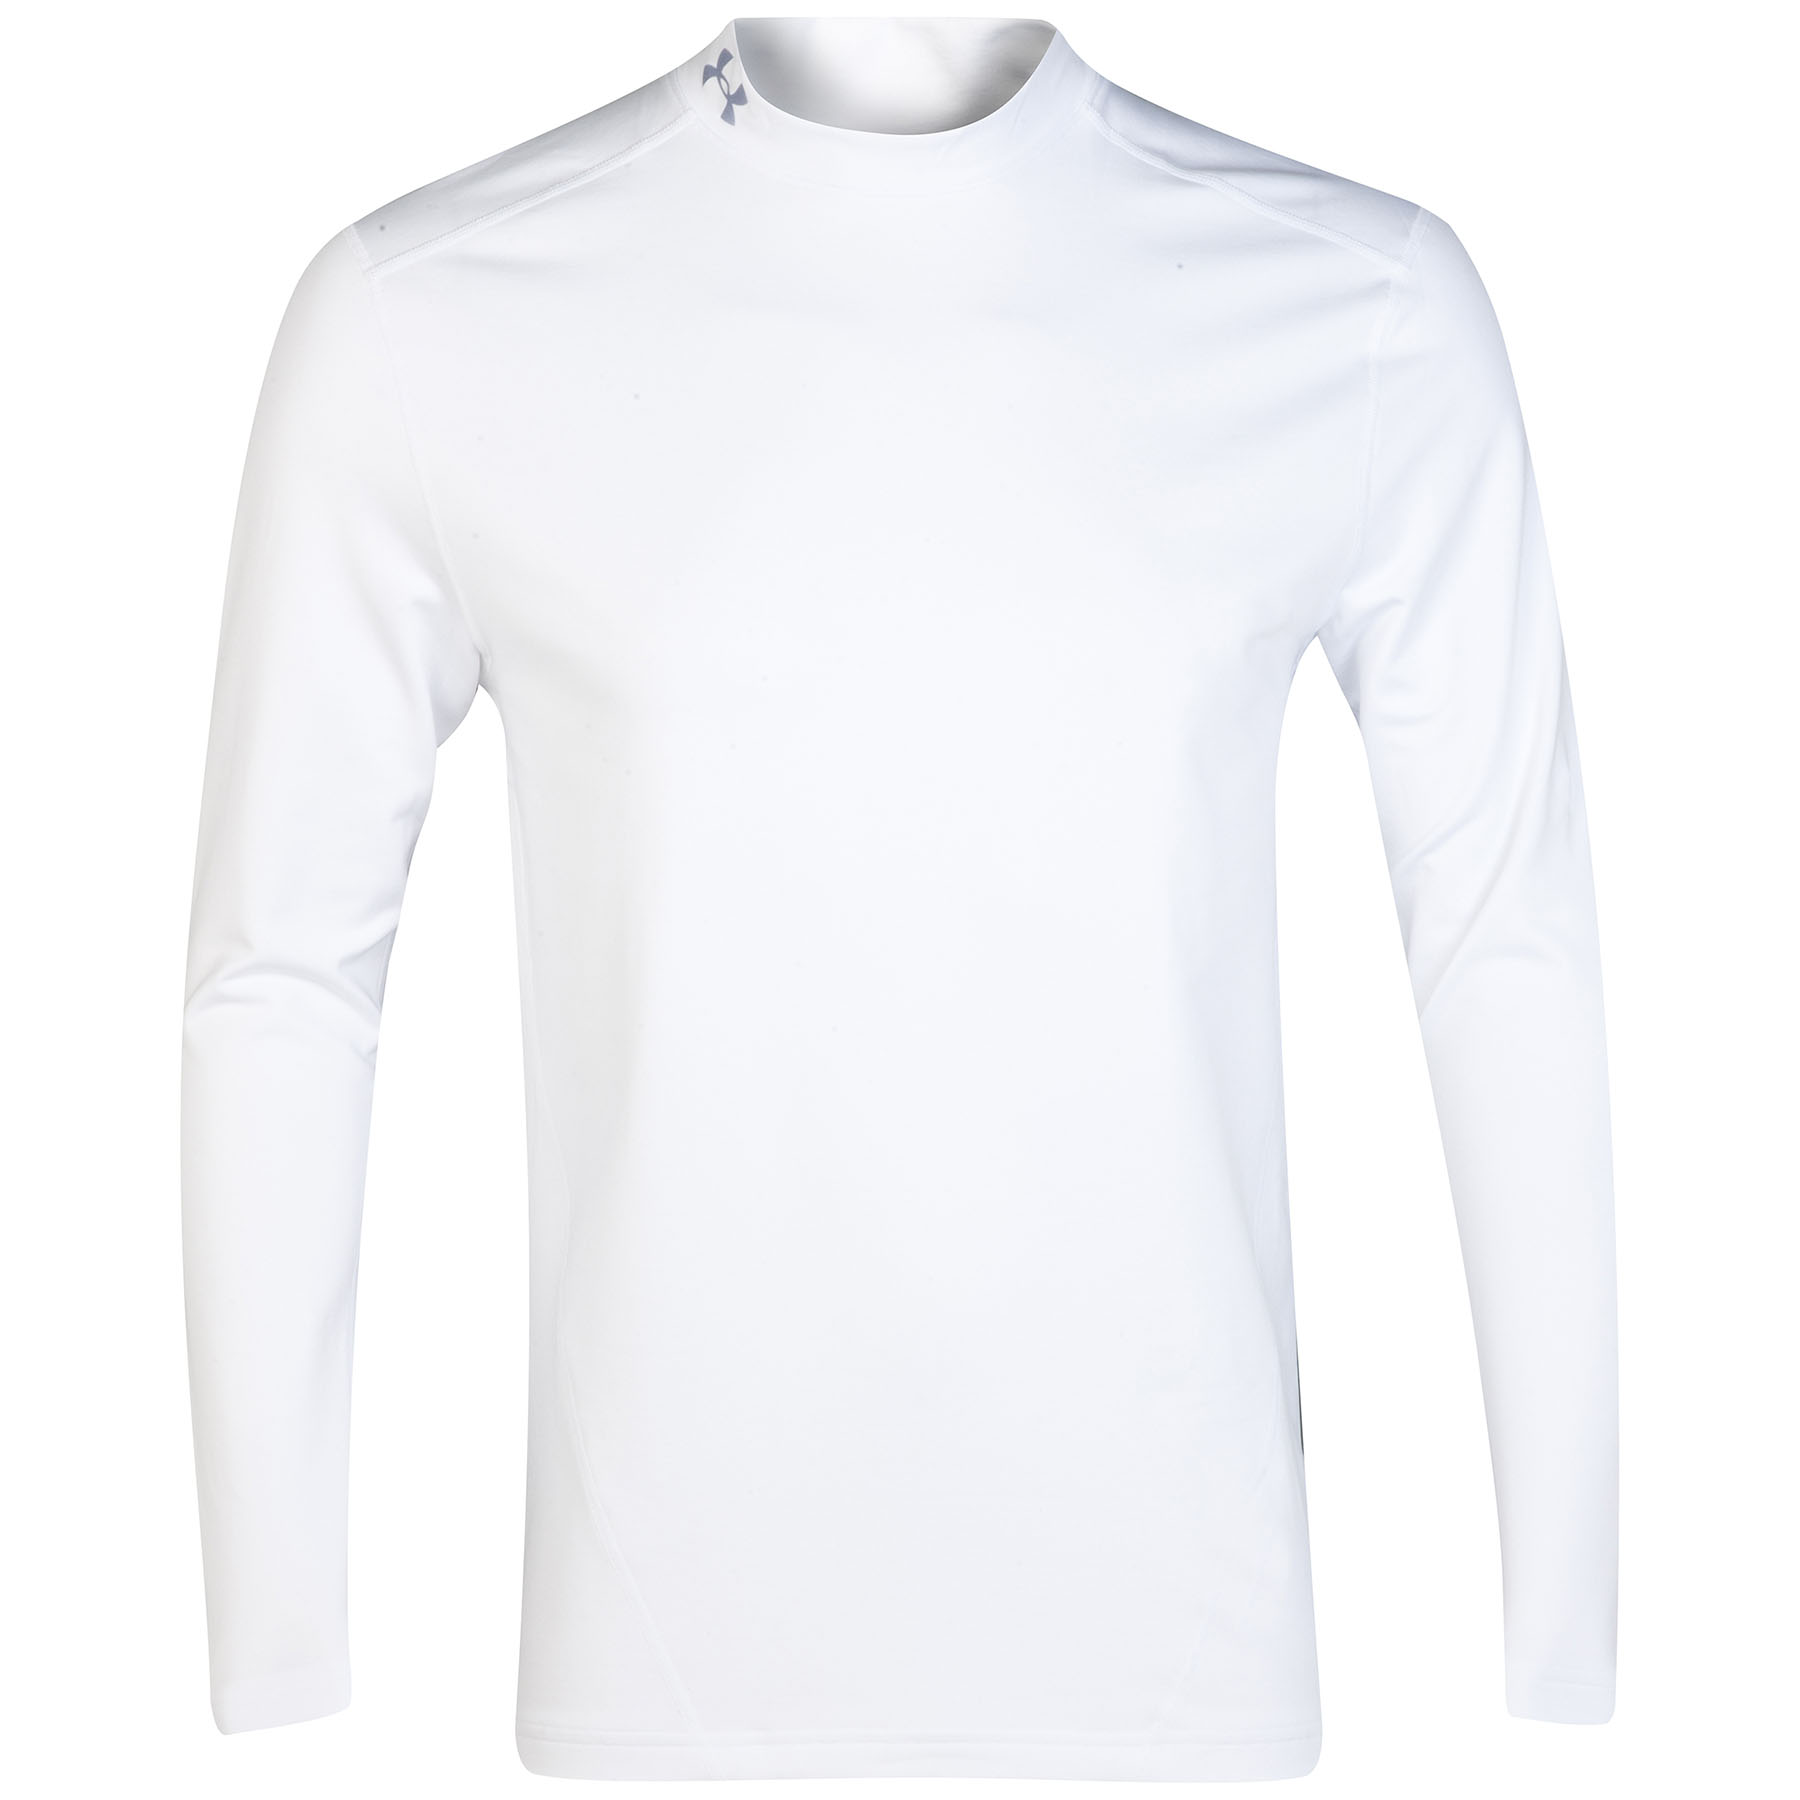 Under Armour Evo Coldgear Compression Mock Baselayer Top - Long Sleeve White